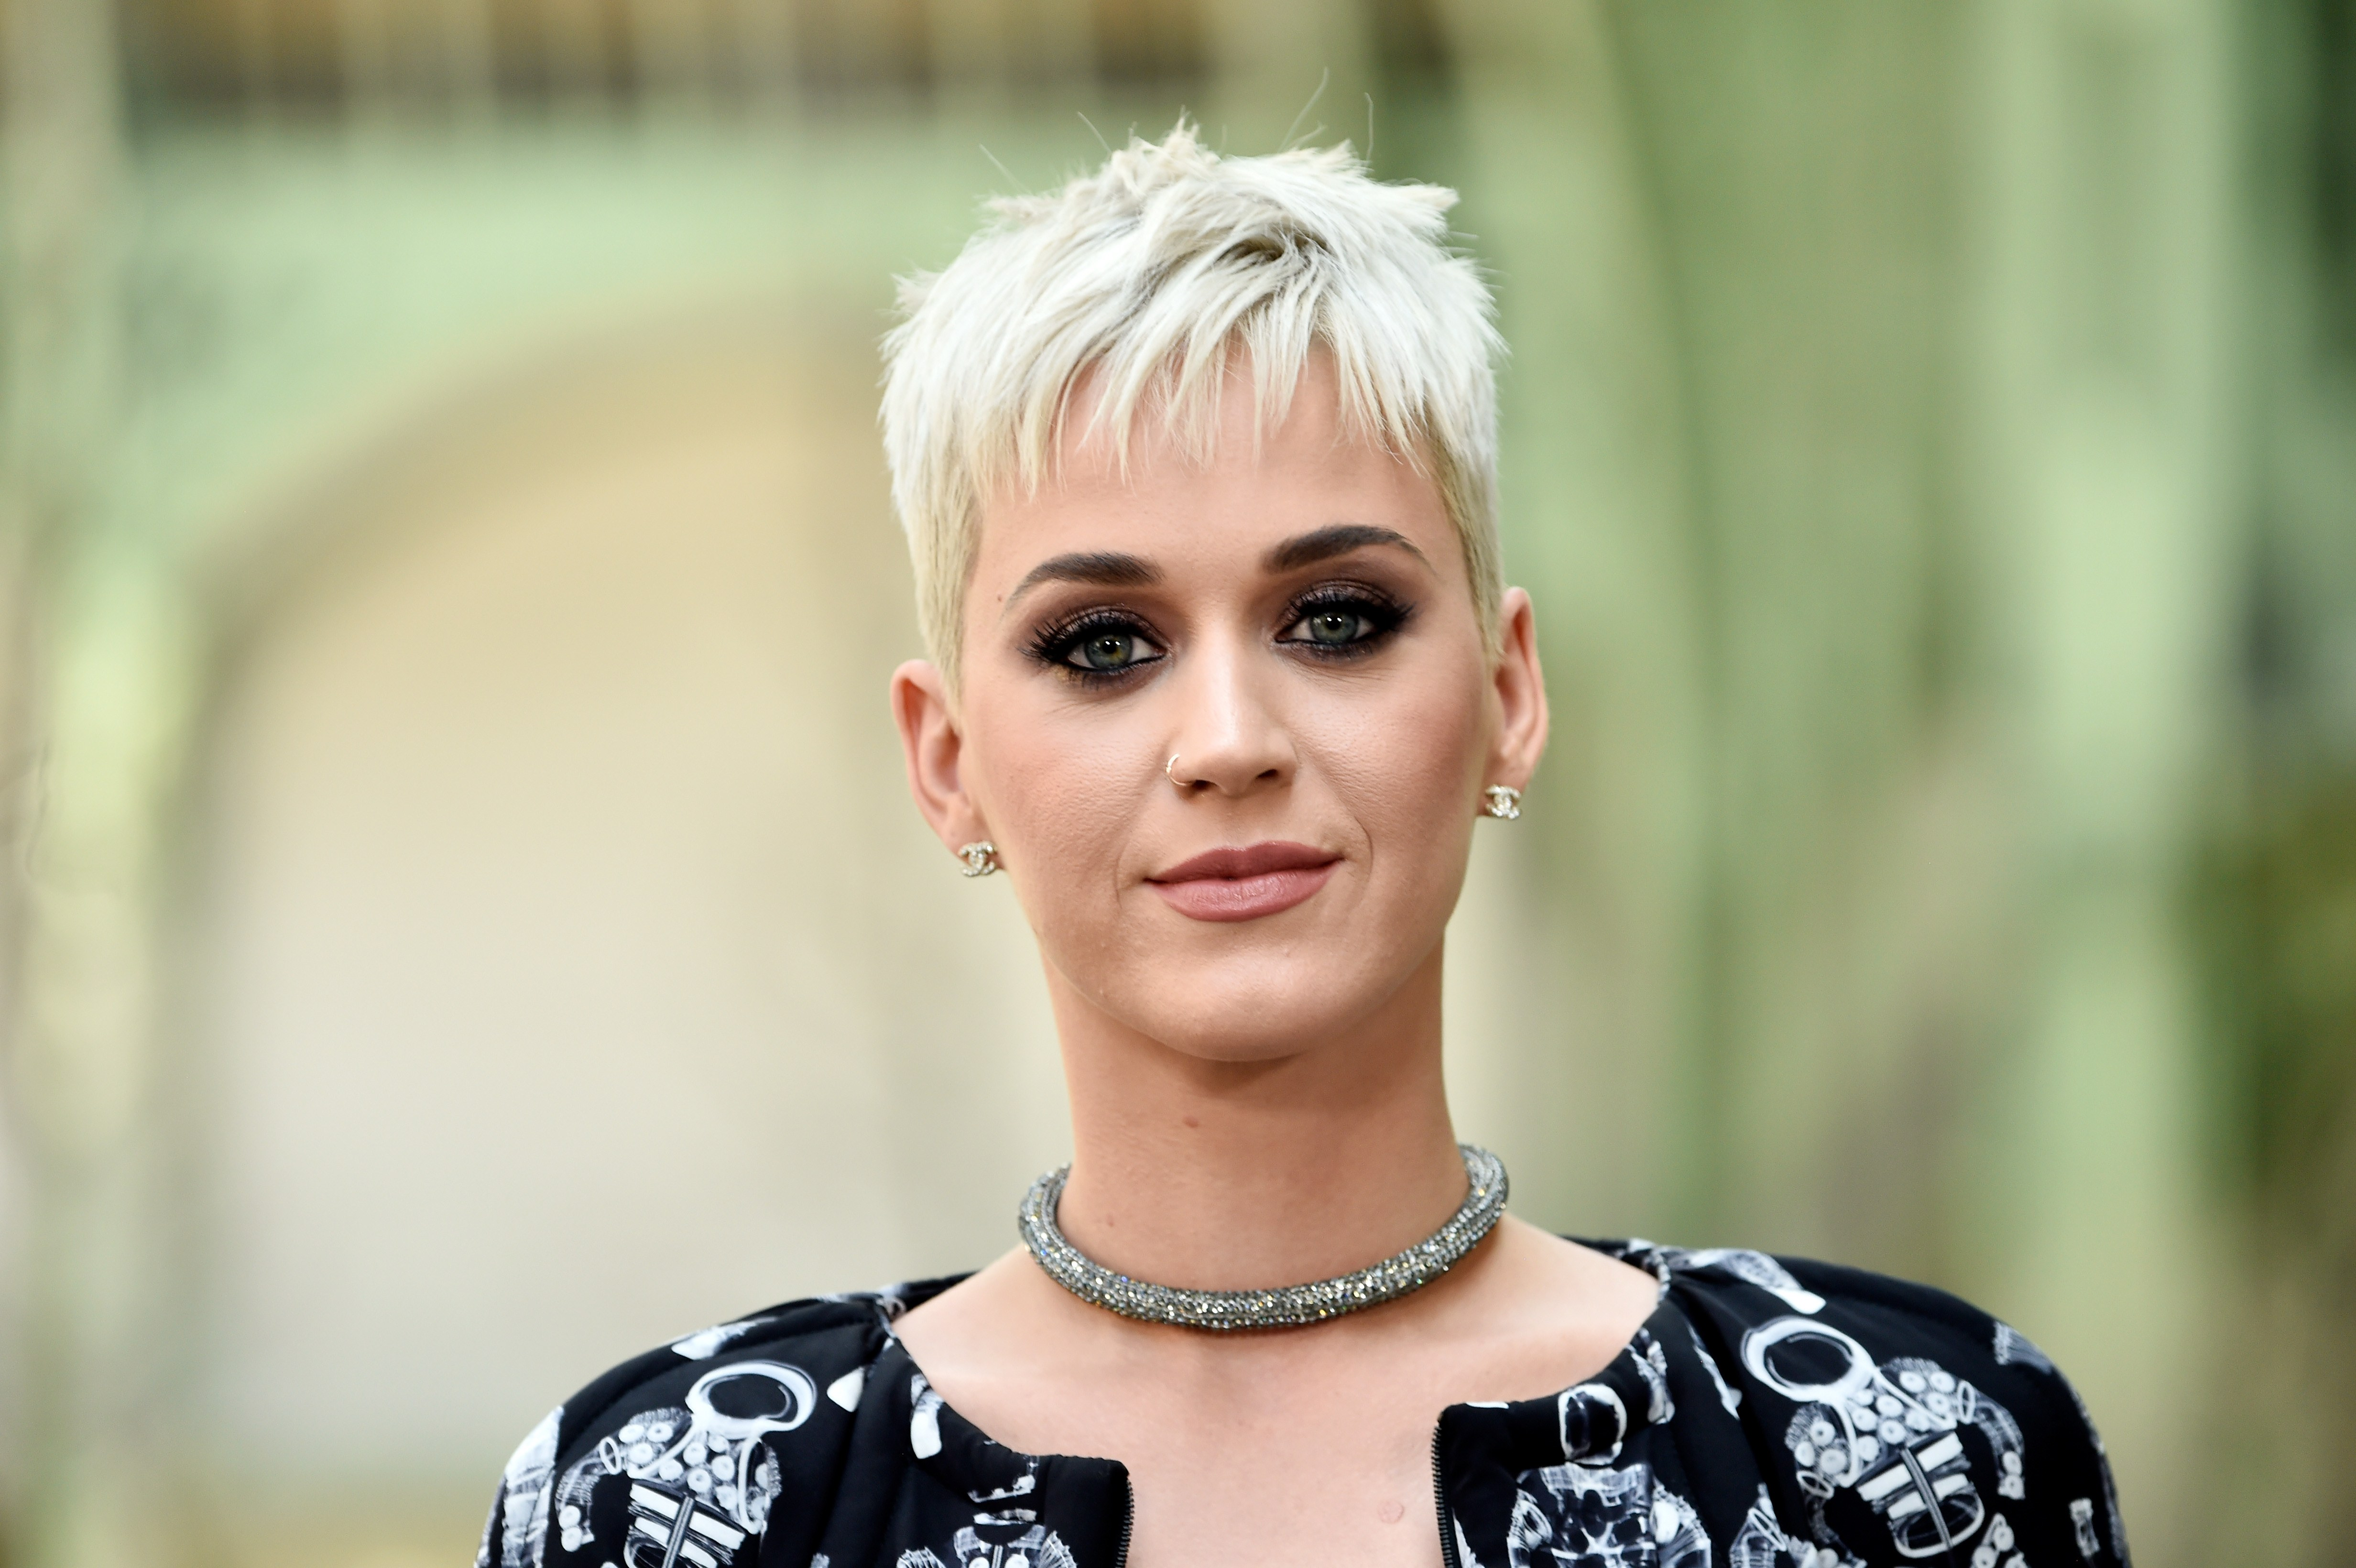 katy perry hair style katy perry new hair style in 2017 hd 4k wallpapers 6349